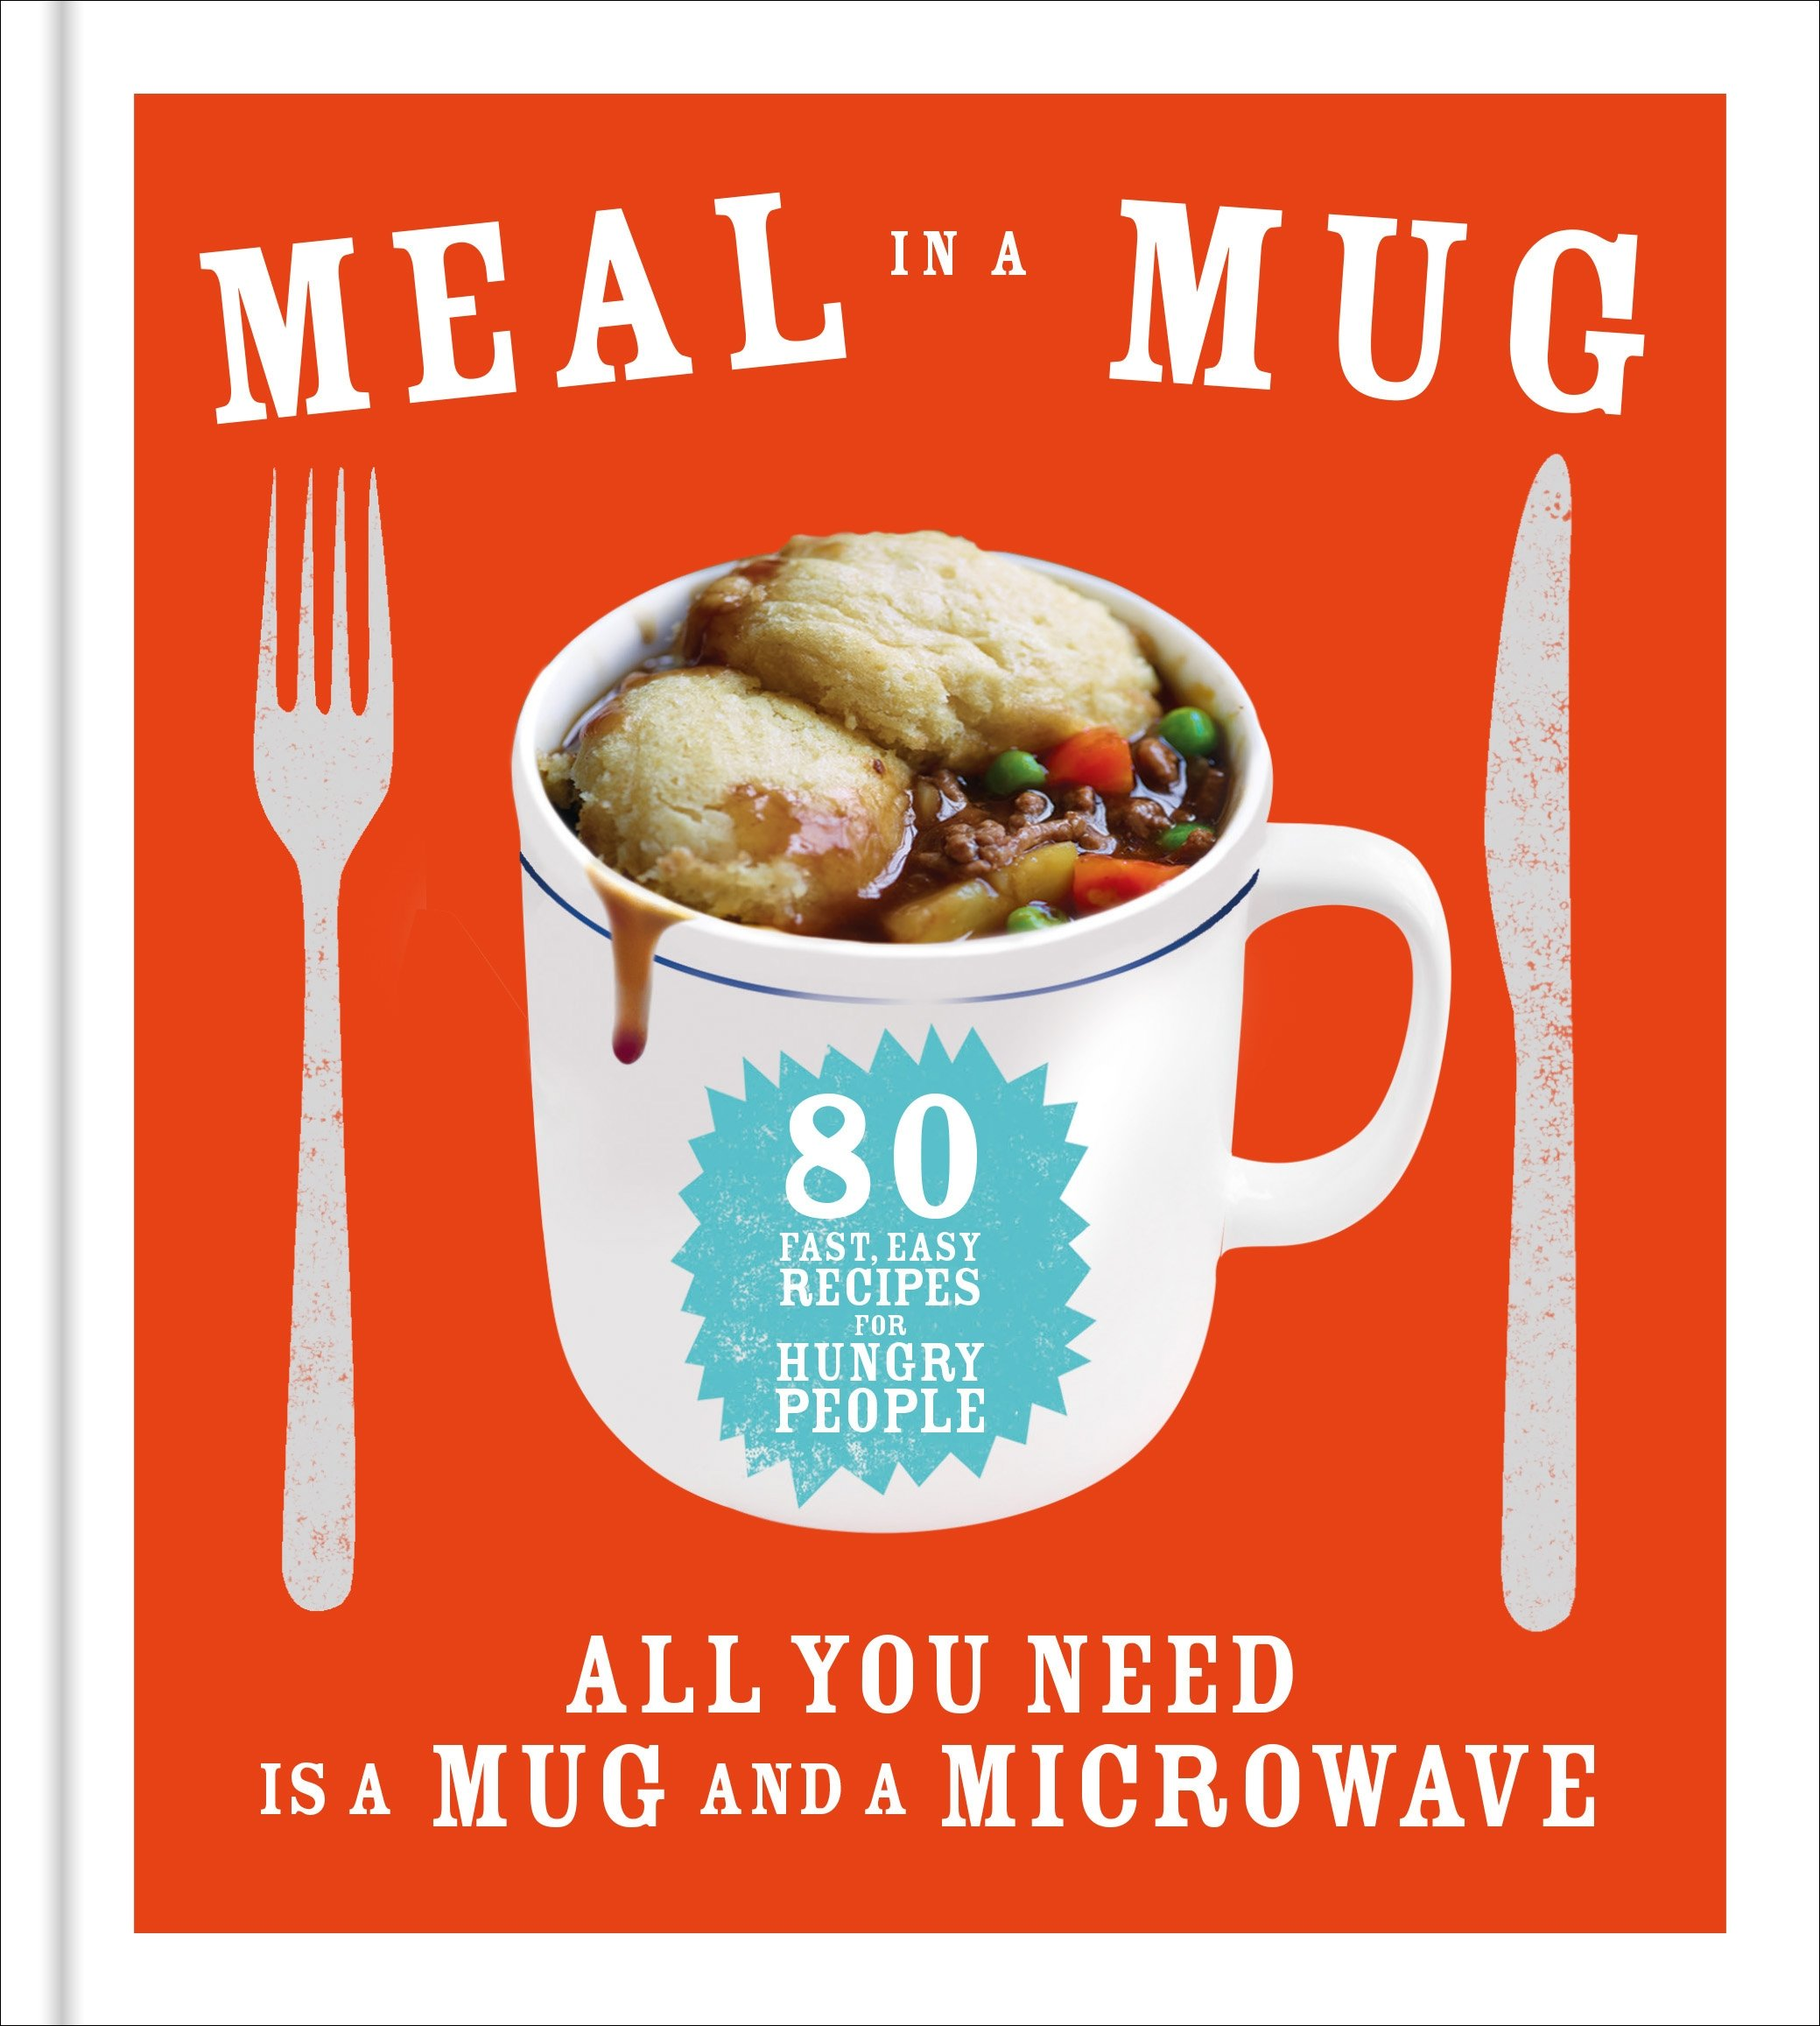 Meal in a mug 80 fast easy recipes for hungry people all you meal in a mug 80 fast easy recipes for hungry people all you need is a mug and a microwave amazon denise smart 8601416330945 books forumfinder Images